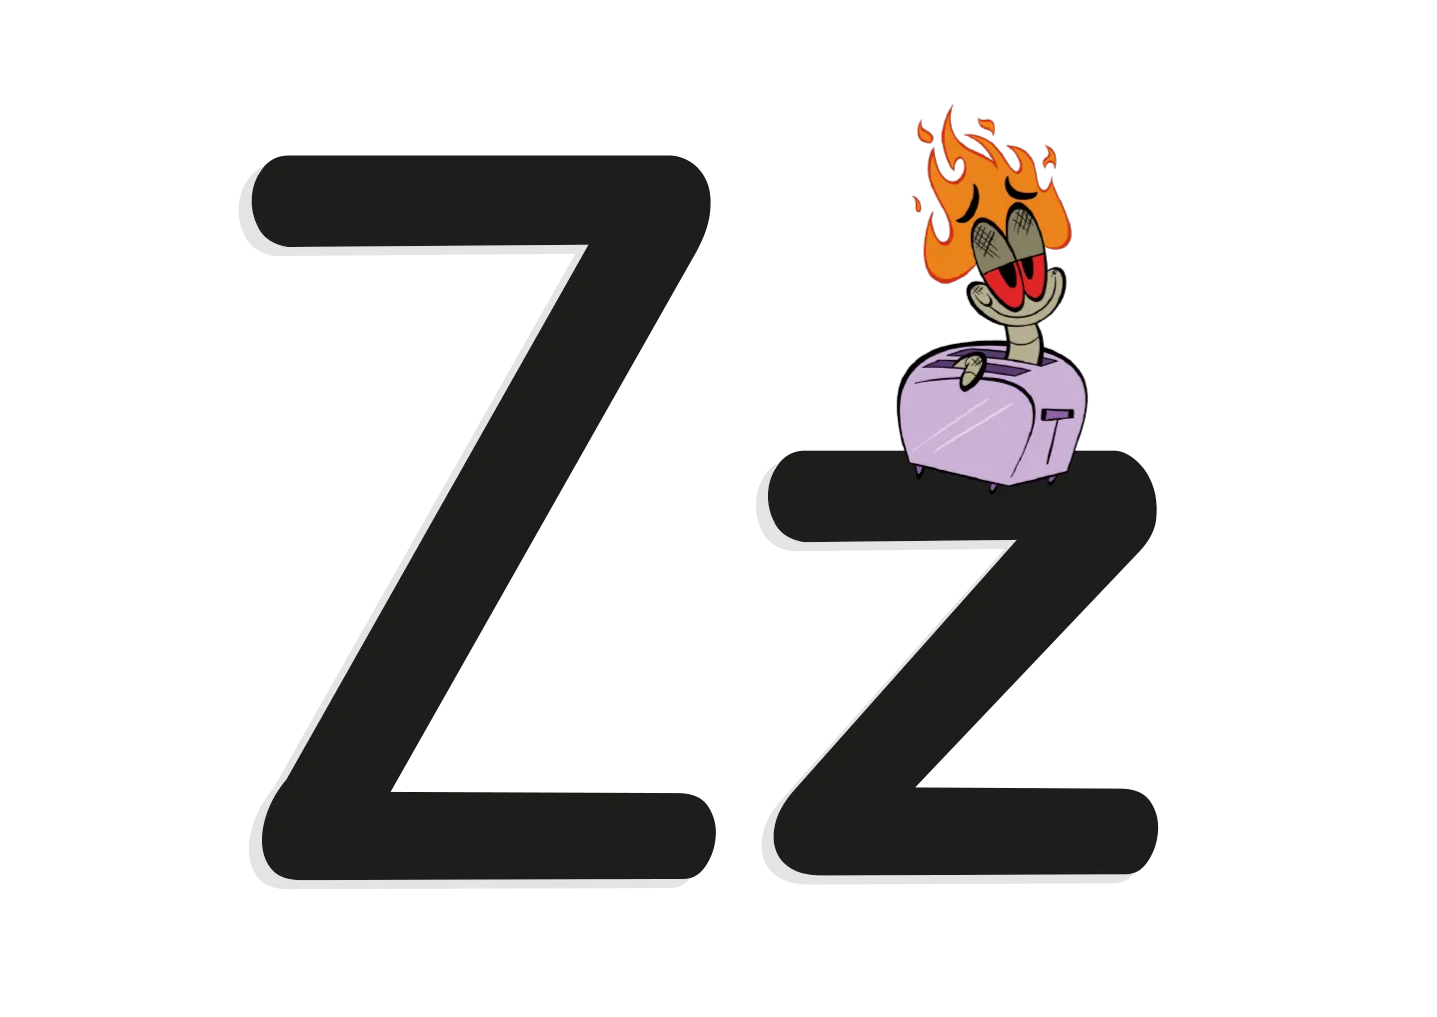 The letter Z with an illustrated worm